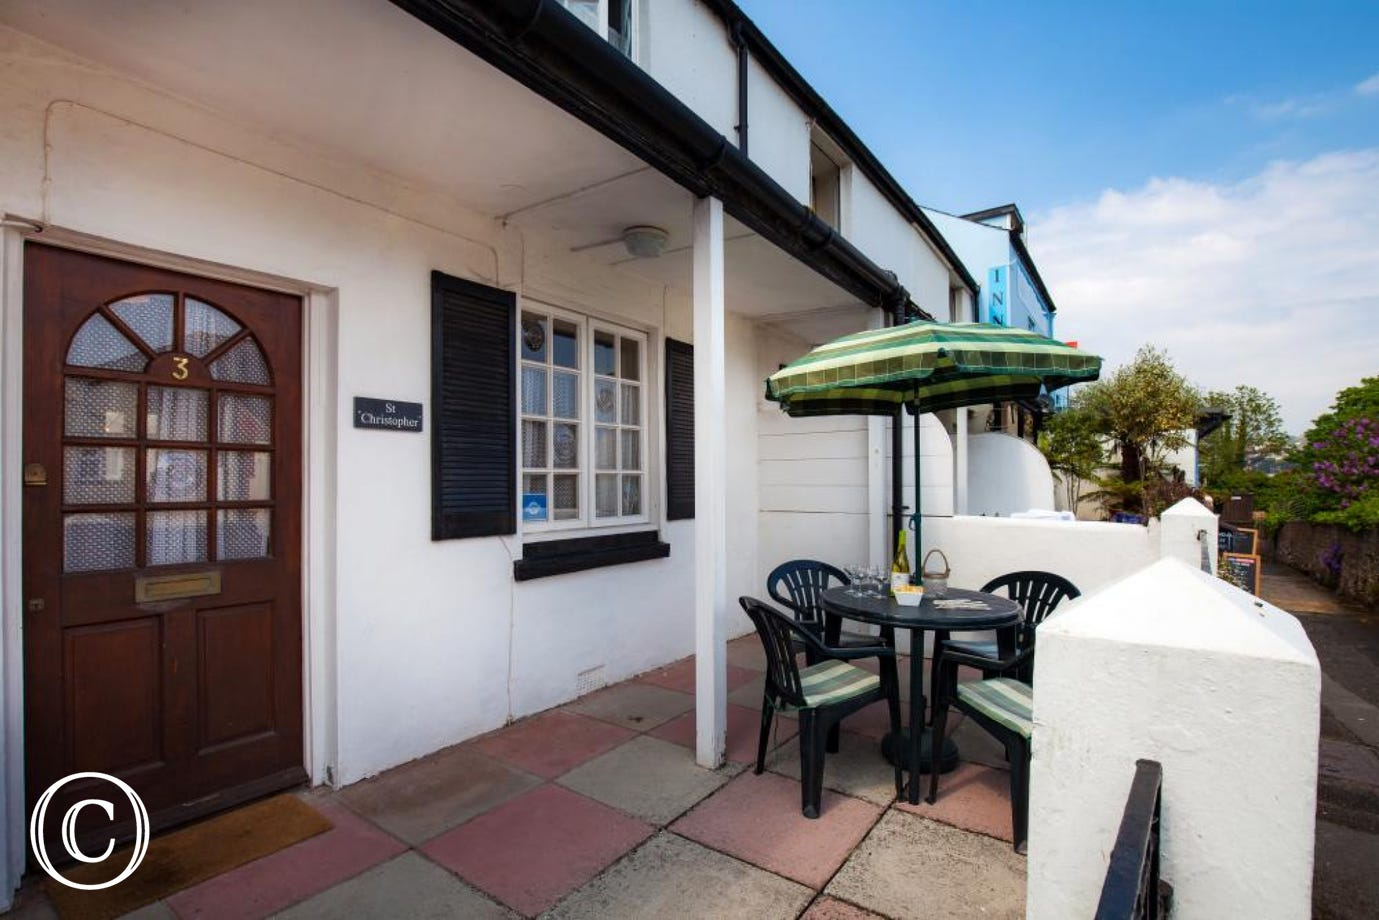 outside courtyard terrace area with seating for four guests in Shaldon